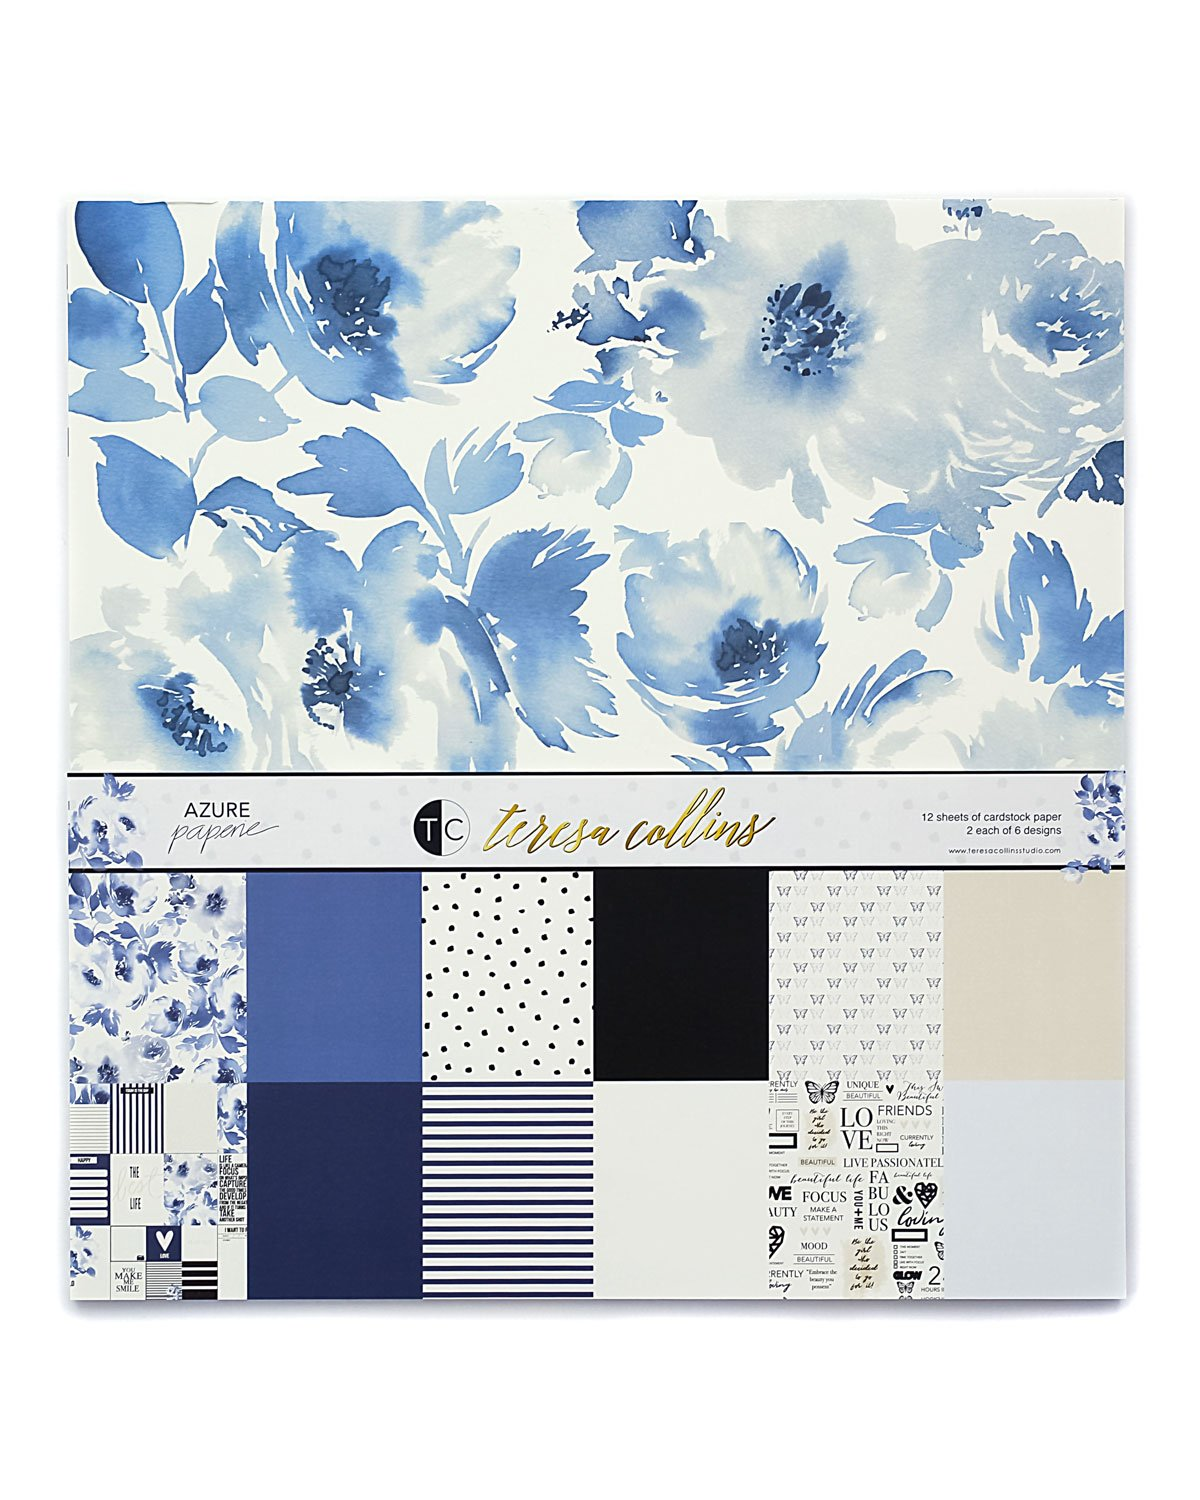 Azure Paperie Paper Collection